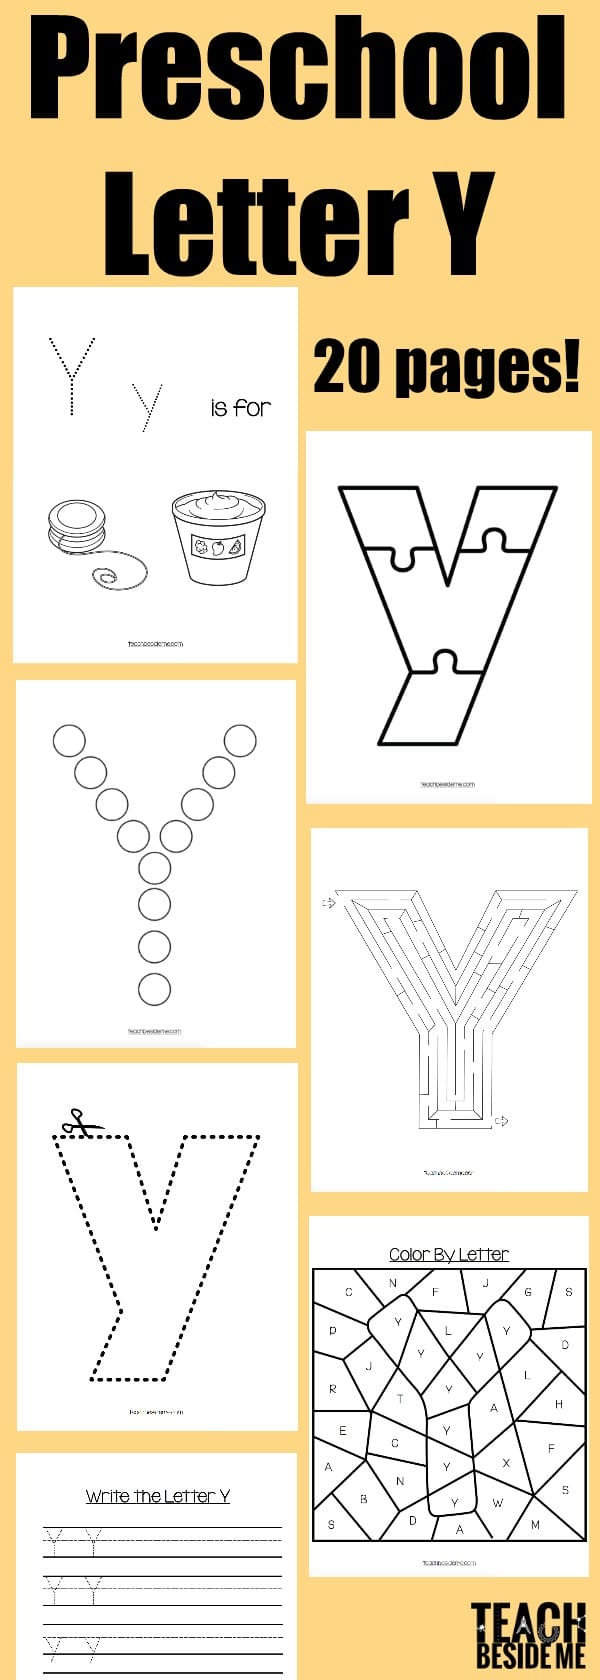 preschool letter Y activities & worksheets